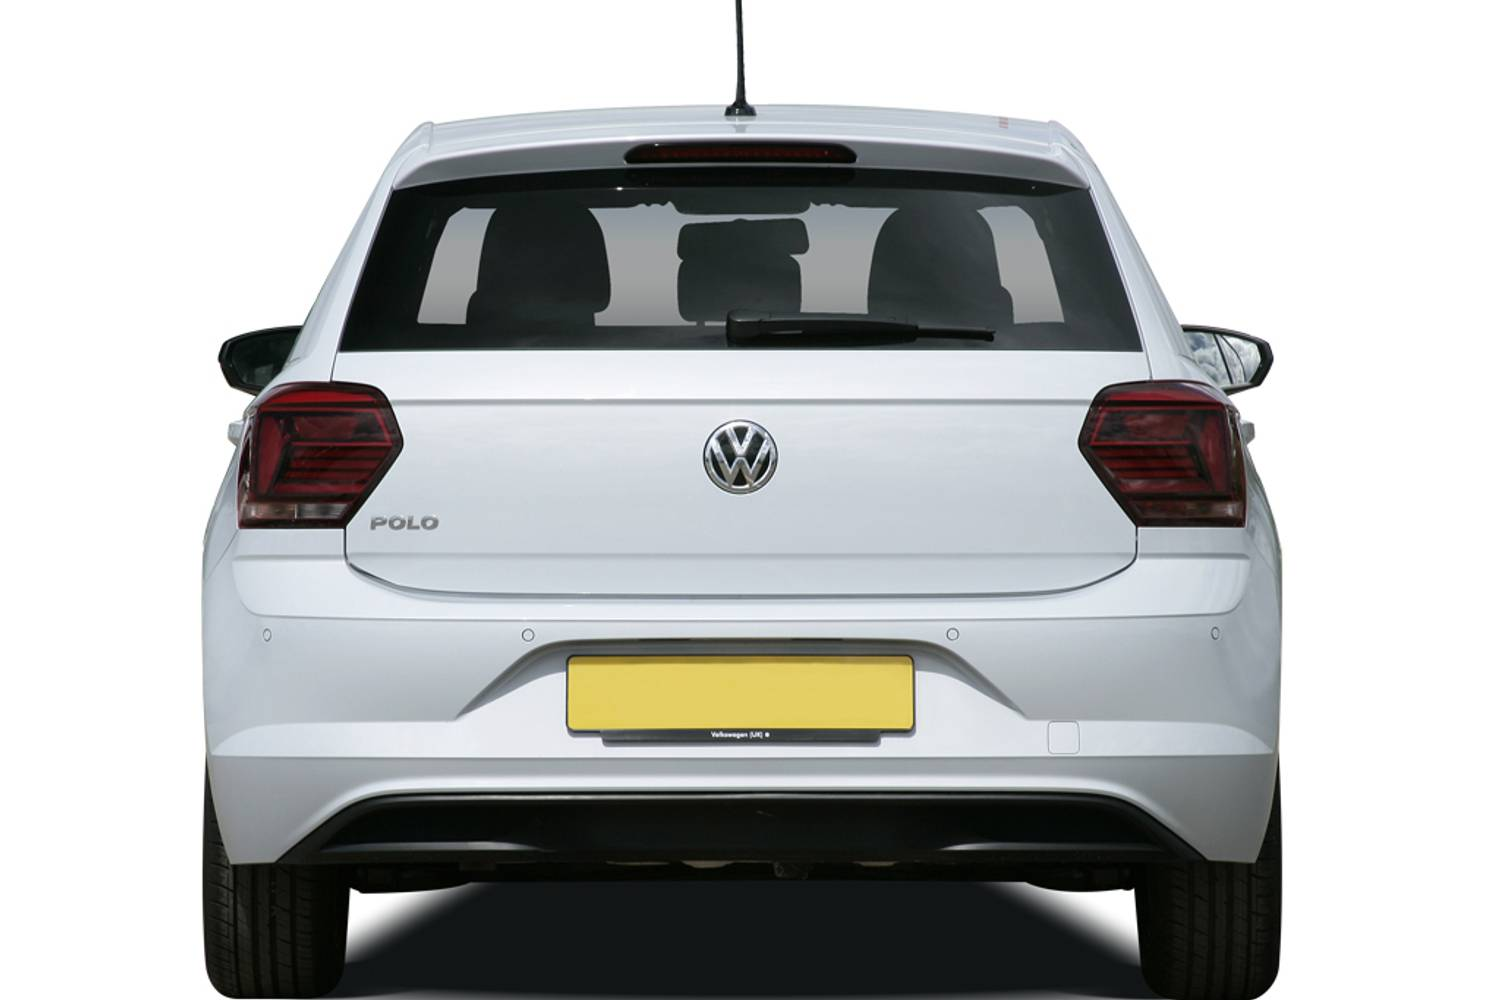 Volkswagen Polo Hatchback 5dr Rear